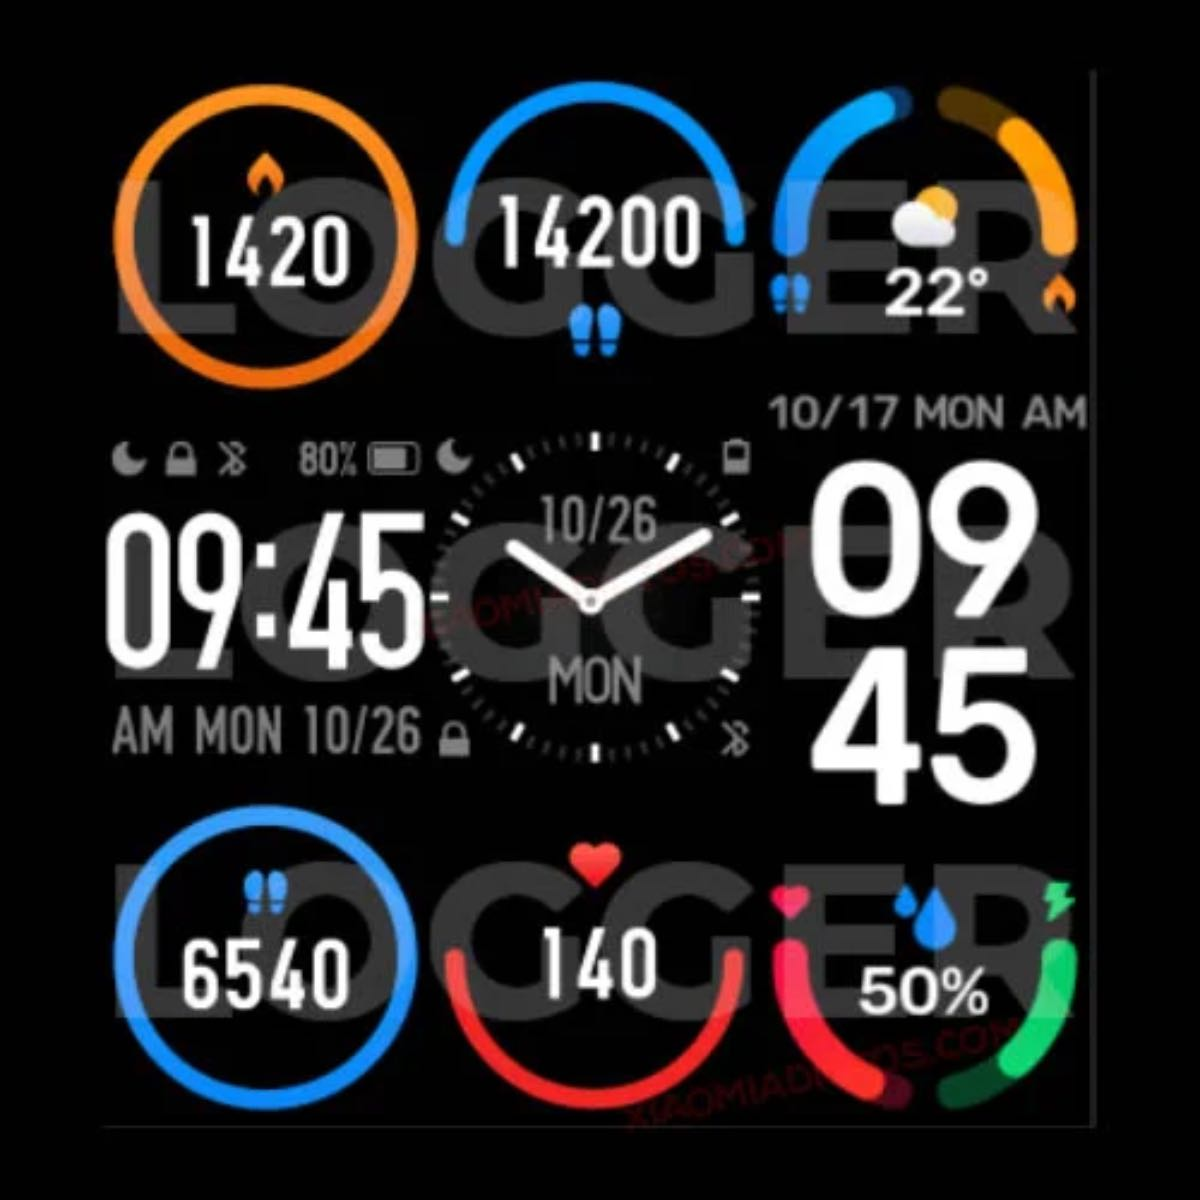 xiaomi mi band 6 display watch face